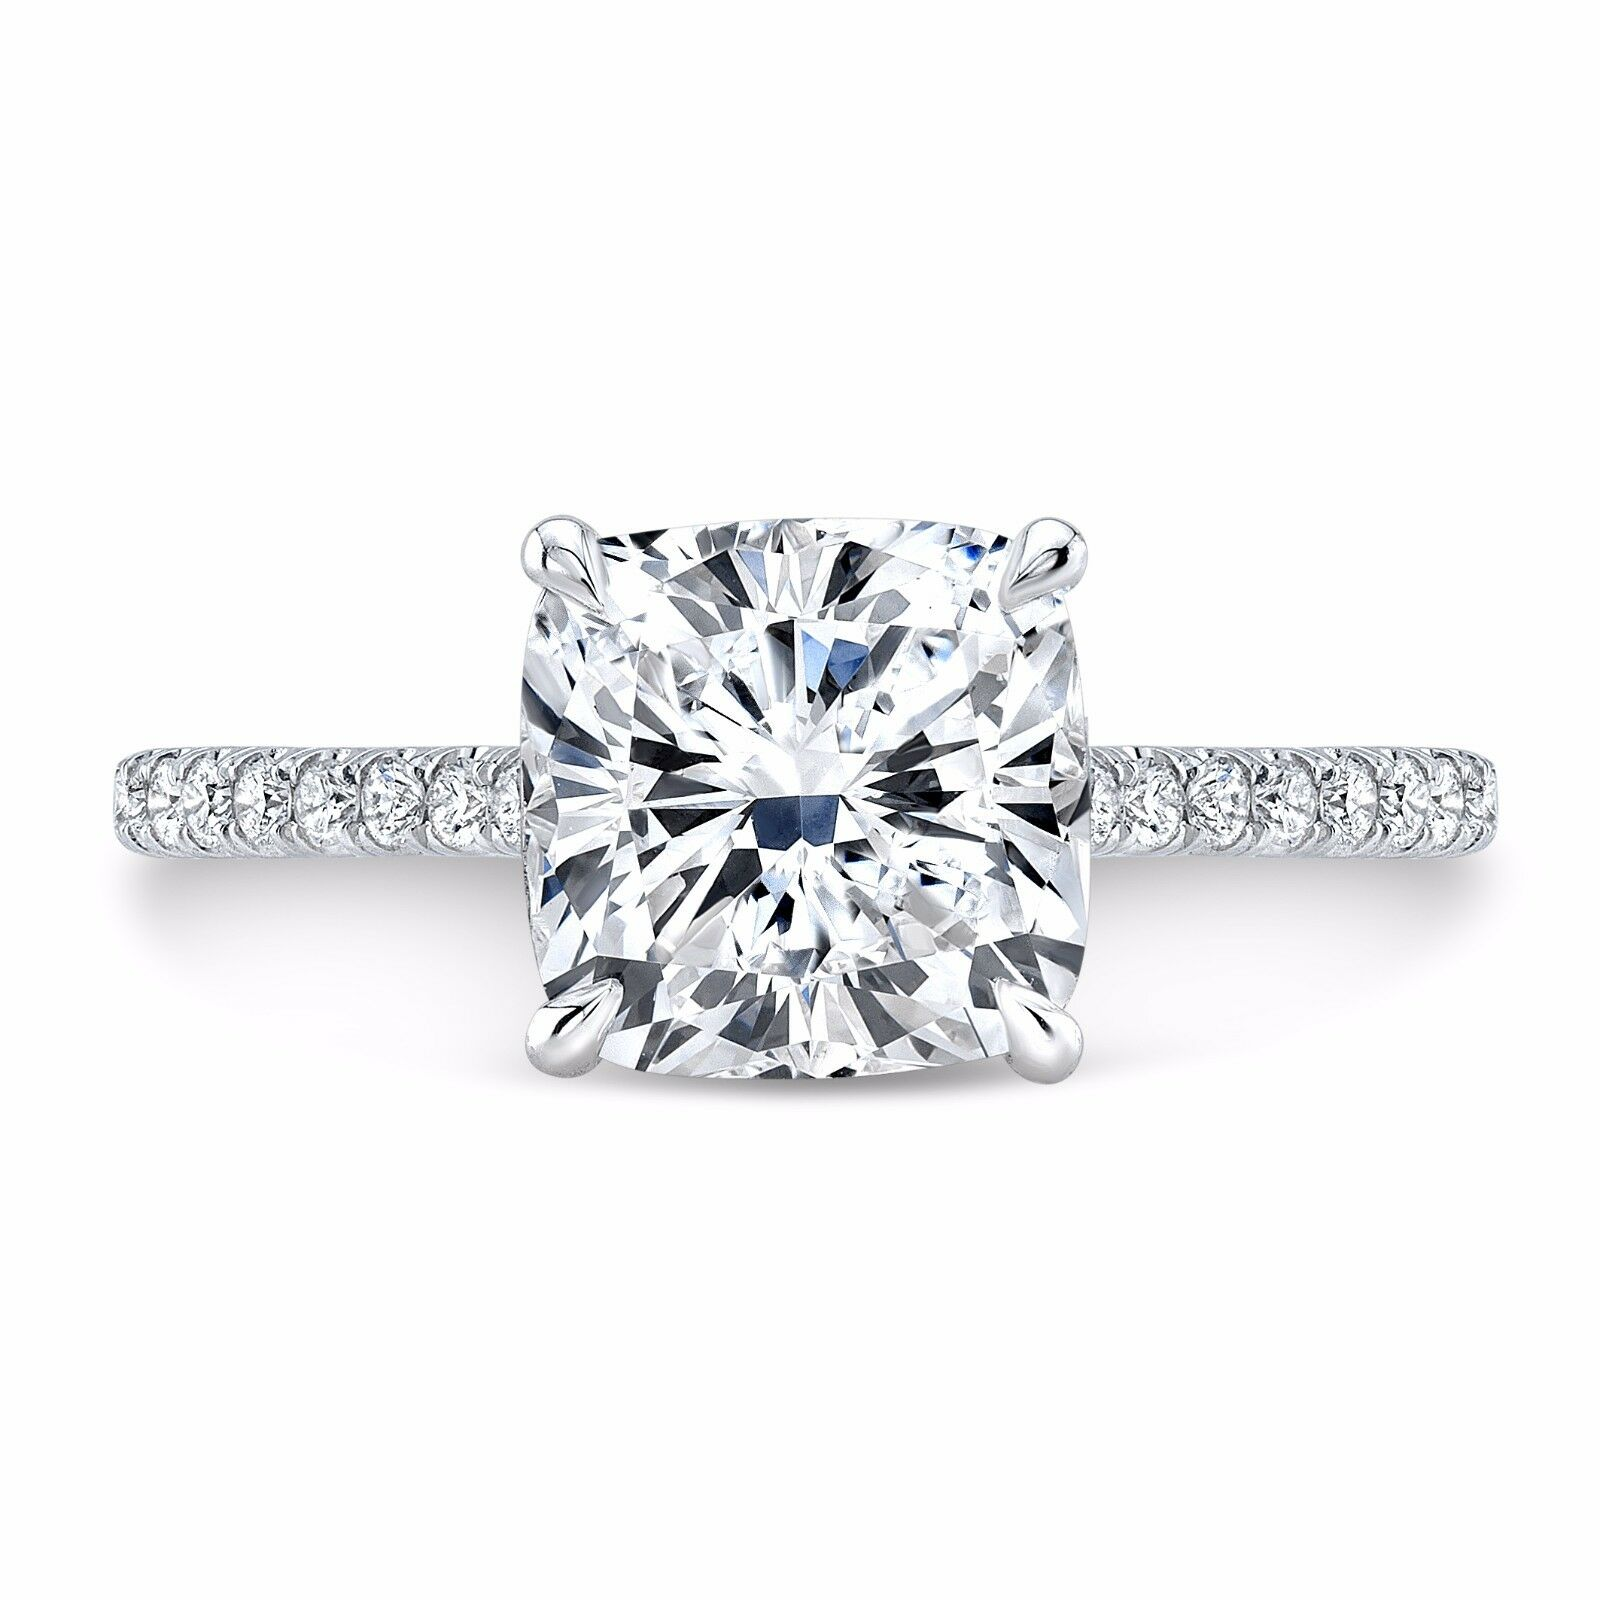 1.50ctw Natural Cushion Pave Diamond Engagement Ring - GIA Certified 1